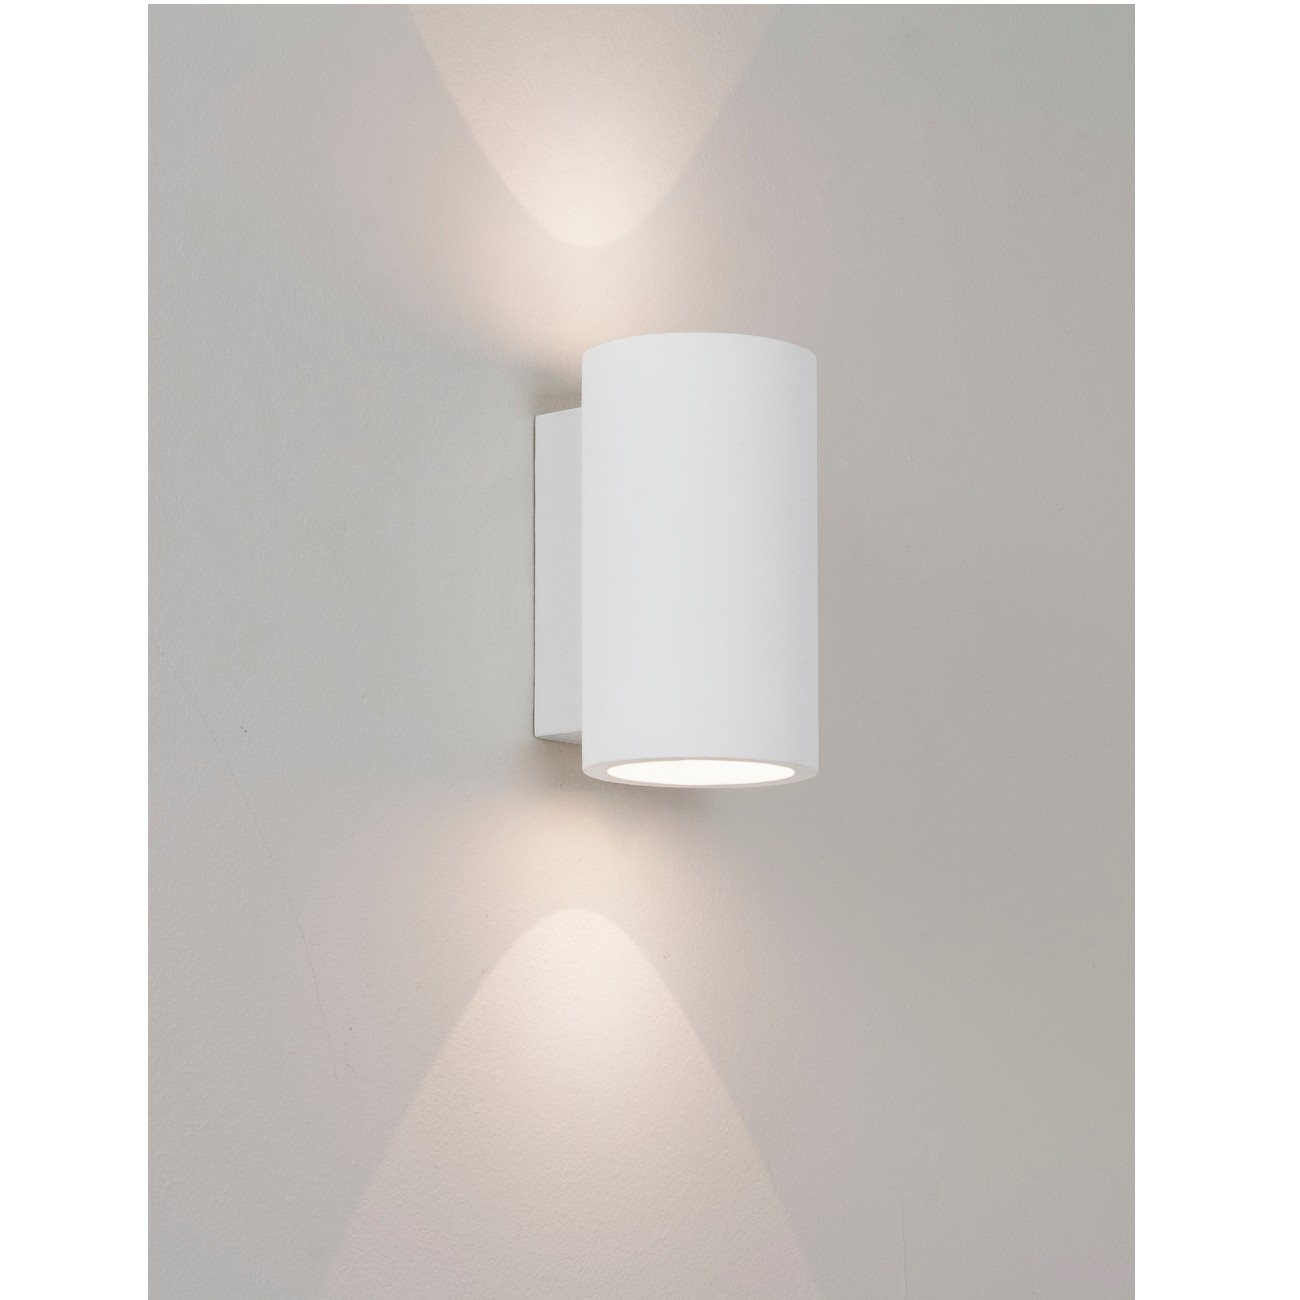 Badezimmerspiegel Rund Moderne Led-wandleuchte, Up- And Downlight, Gips Weiß